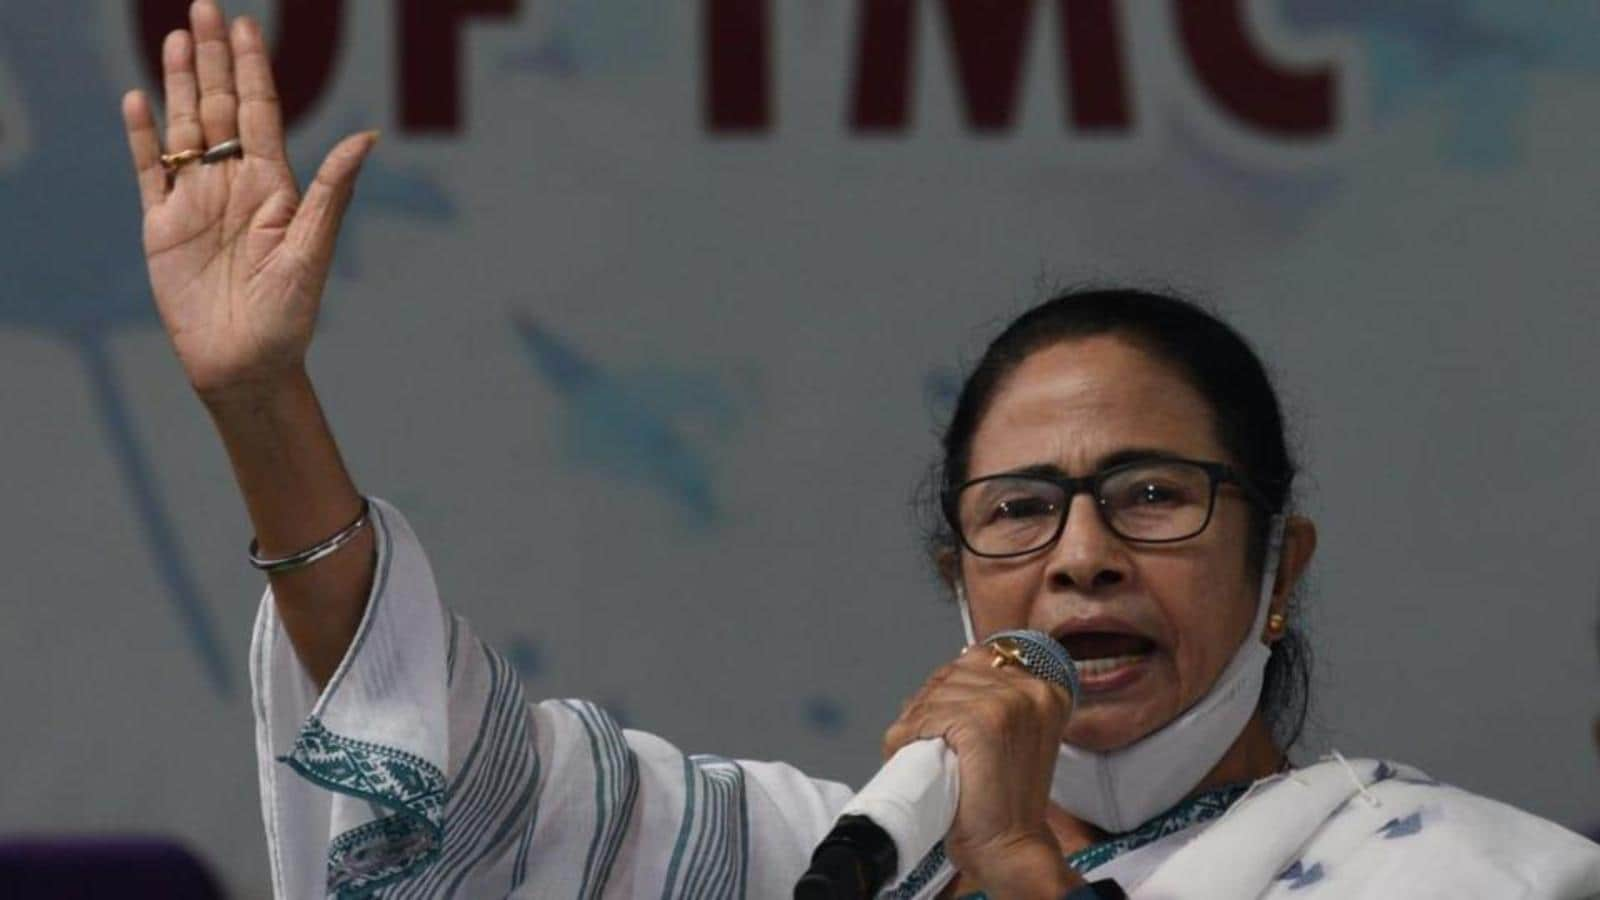 Someone else will be CM if I don't get every vote, says Mamata at campaign meet